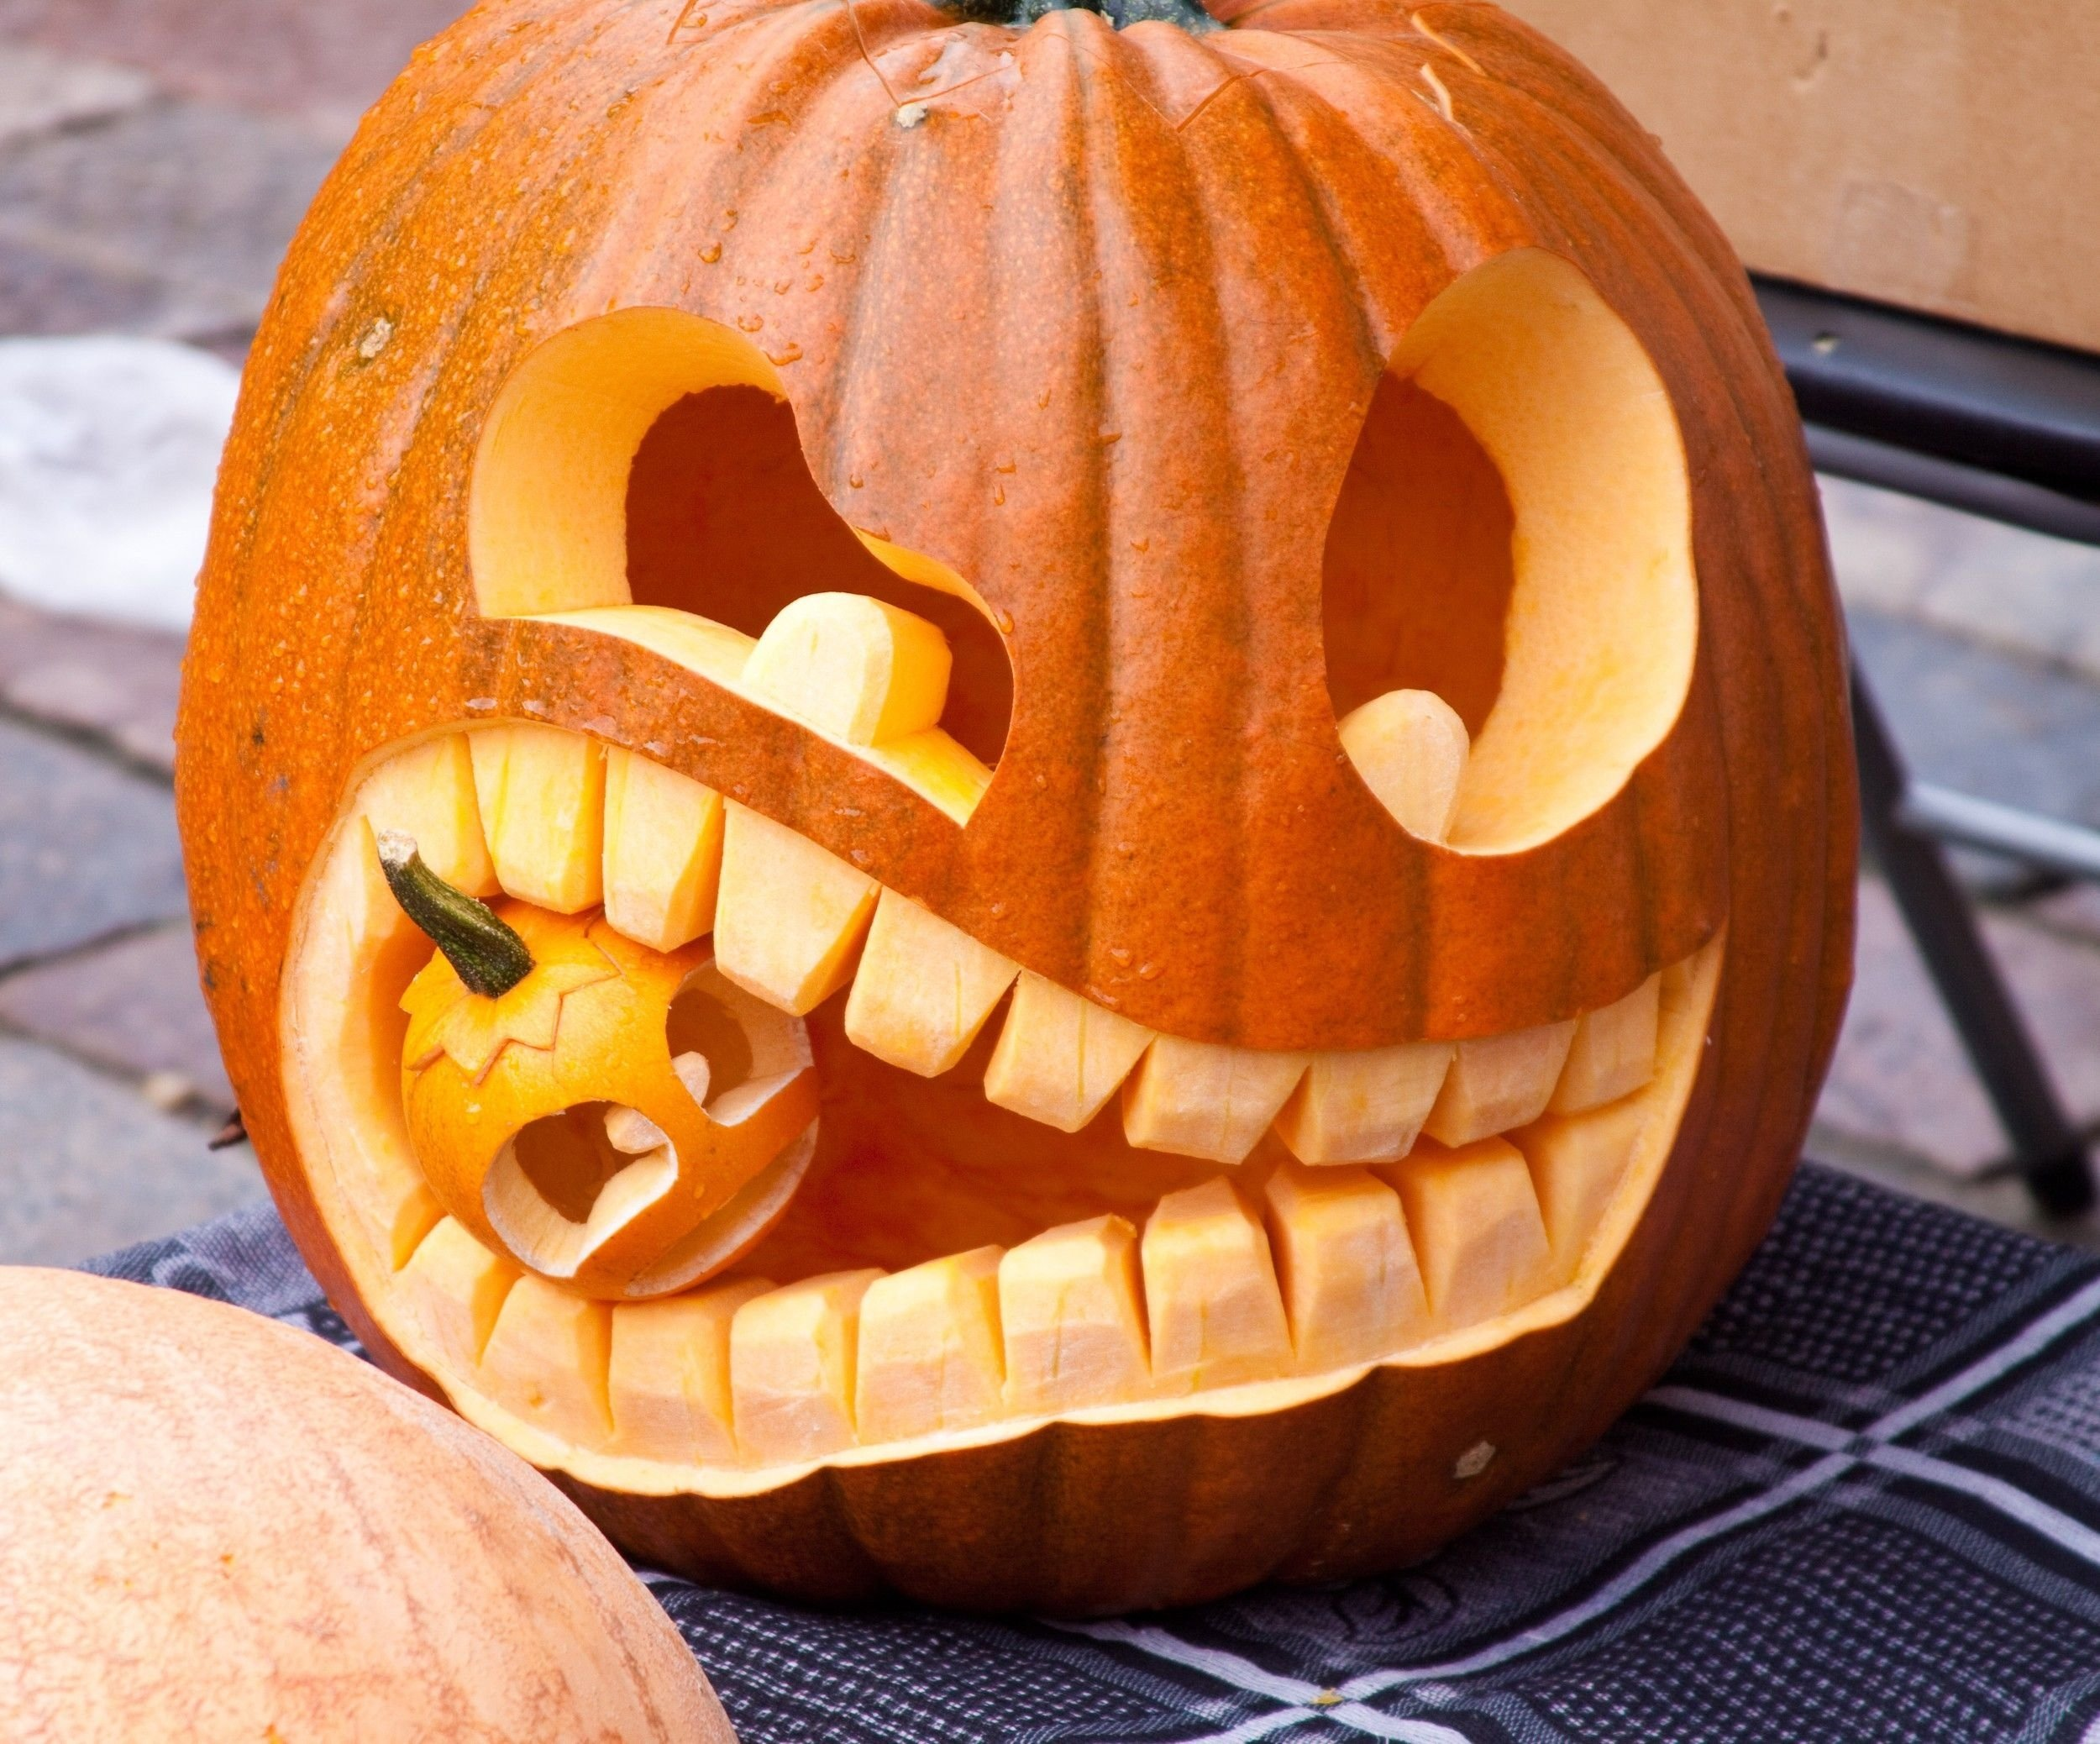 10 Fantastic Cool Ideas For Carving A Pumpkin appealing pumpkins carving ideas with pumpkin carving faces also 2020